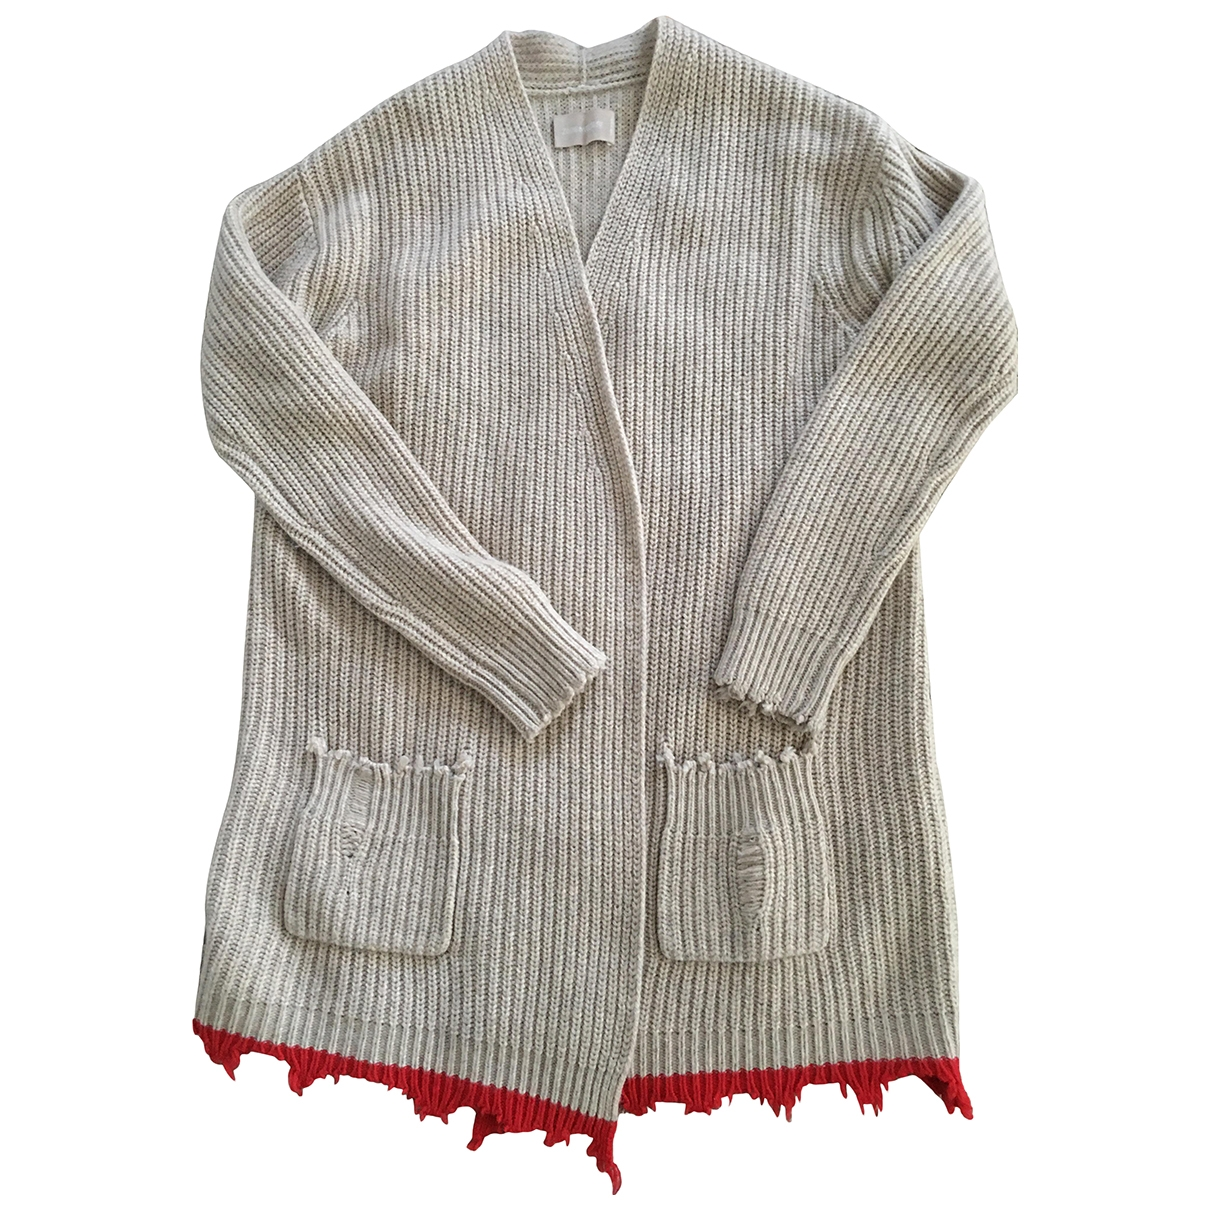 Zadig & Voltaire \N Beige Wool Knitwear for Women M International